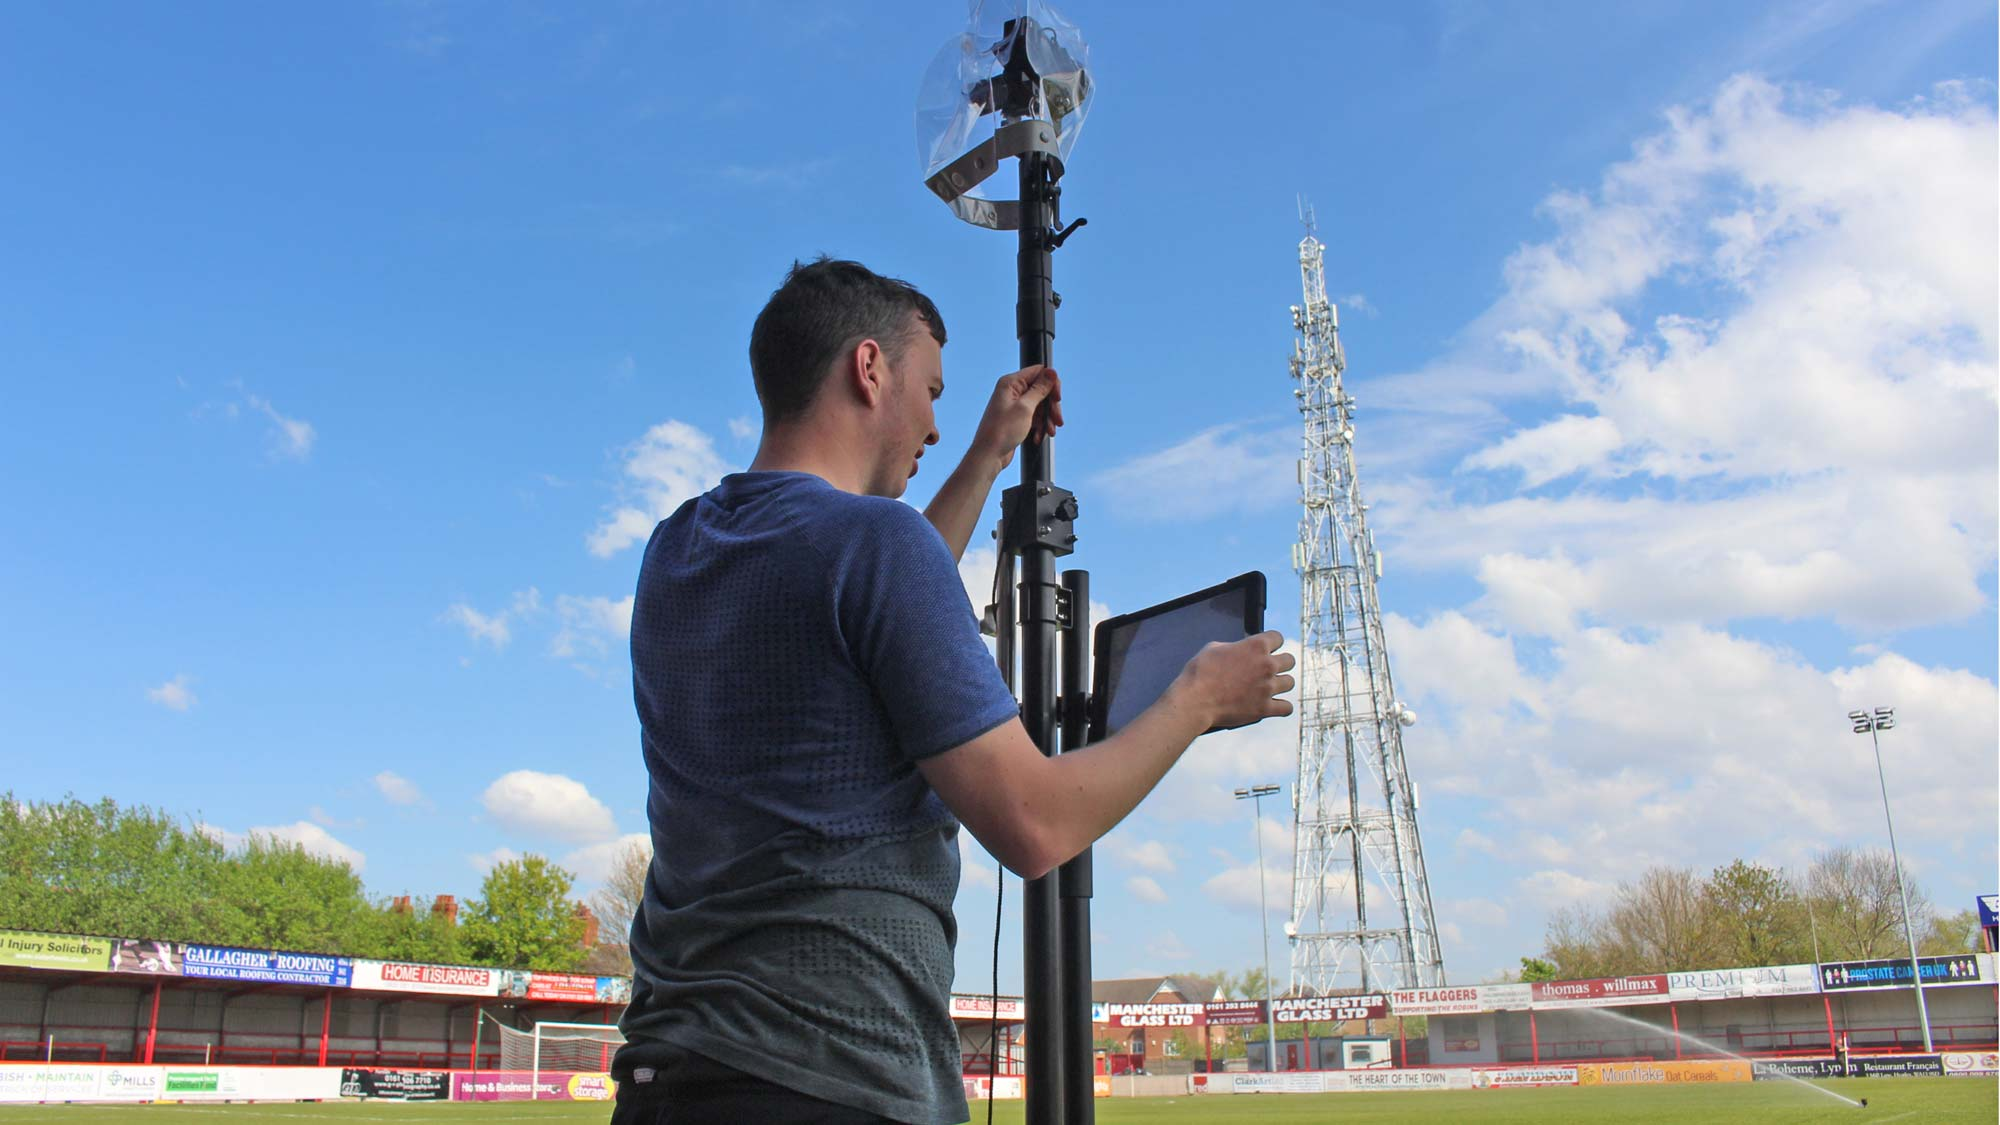 Jack Heggie setting up the Vantage Point camera mast at a soccer stadium